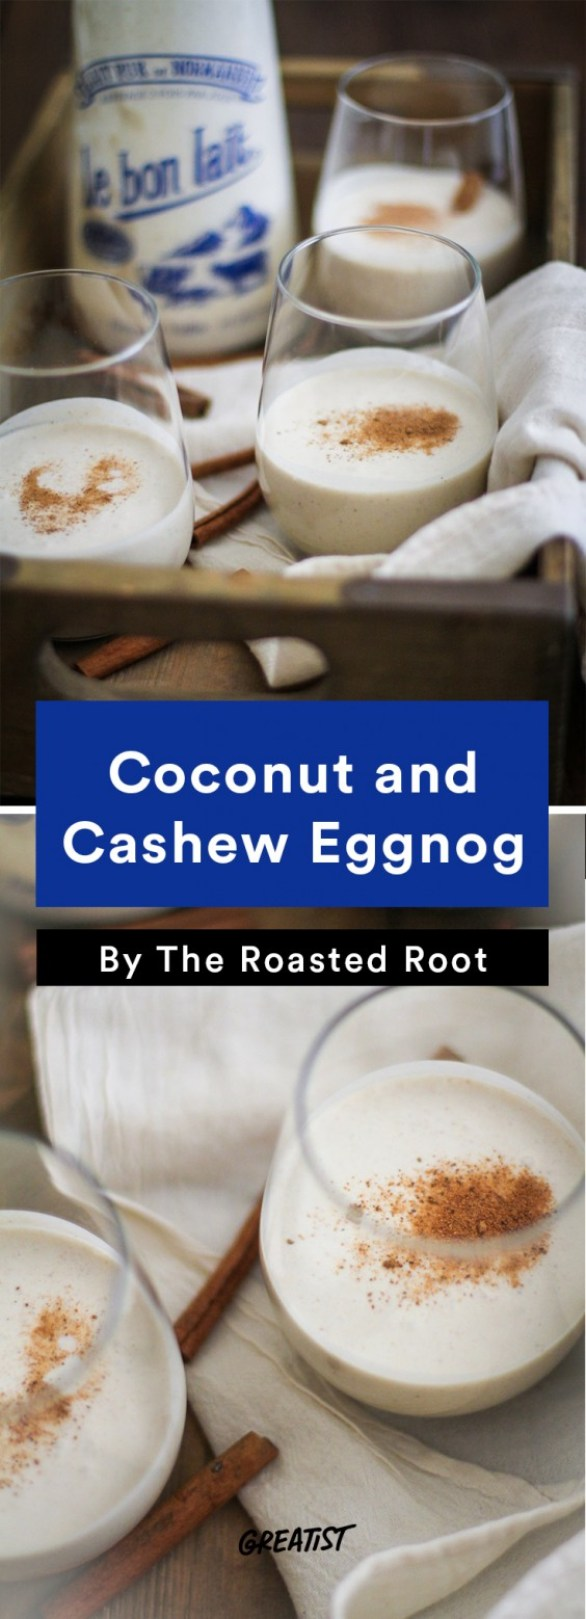 dairy free eggnog: Coconut and Cashew